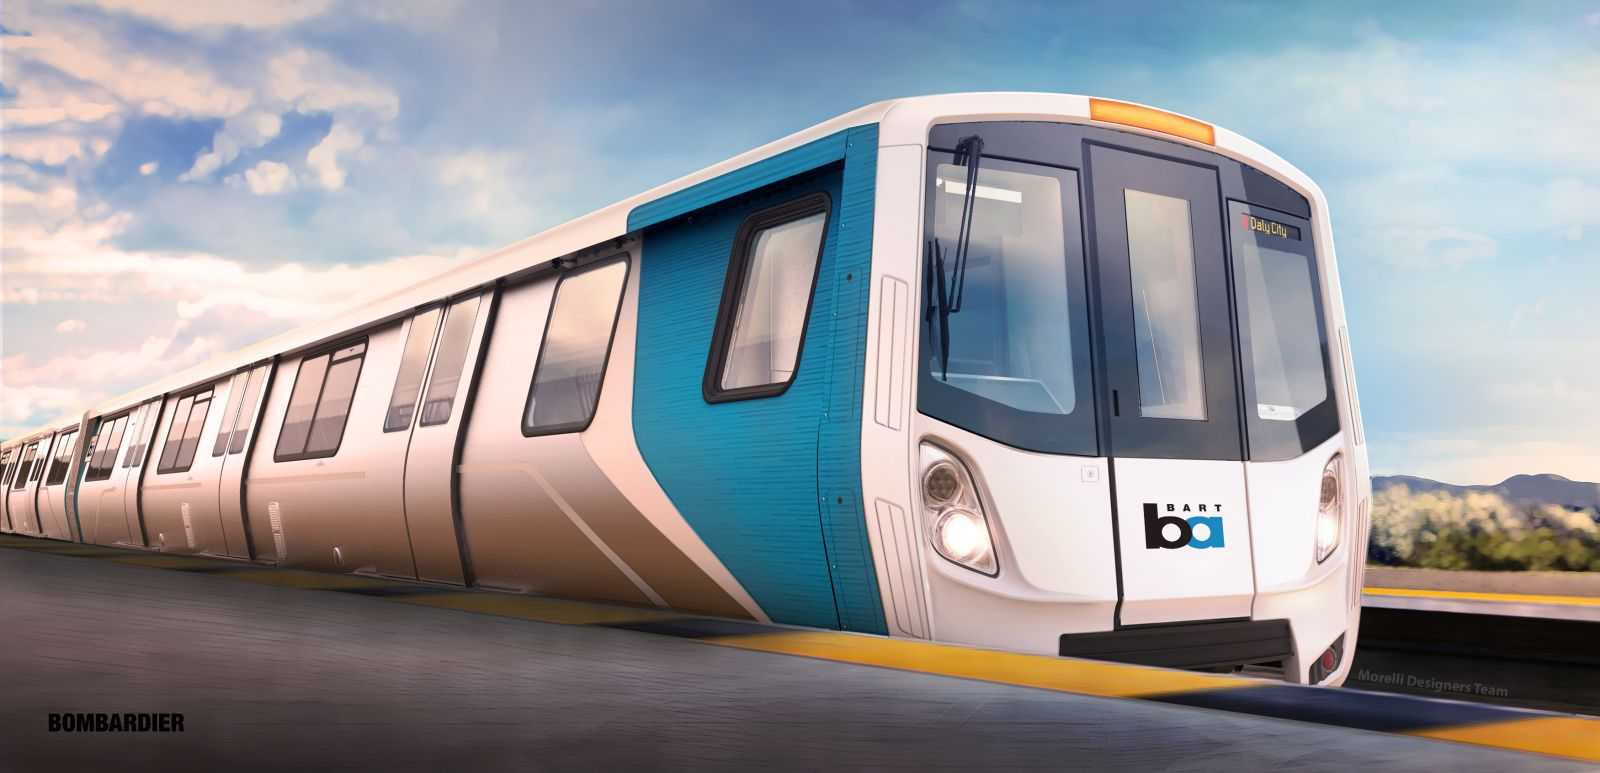 BART Zug Bombardier Fleet of the future